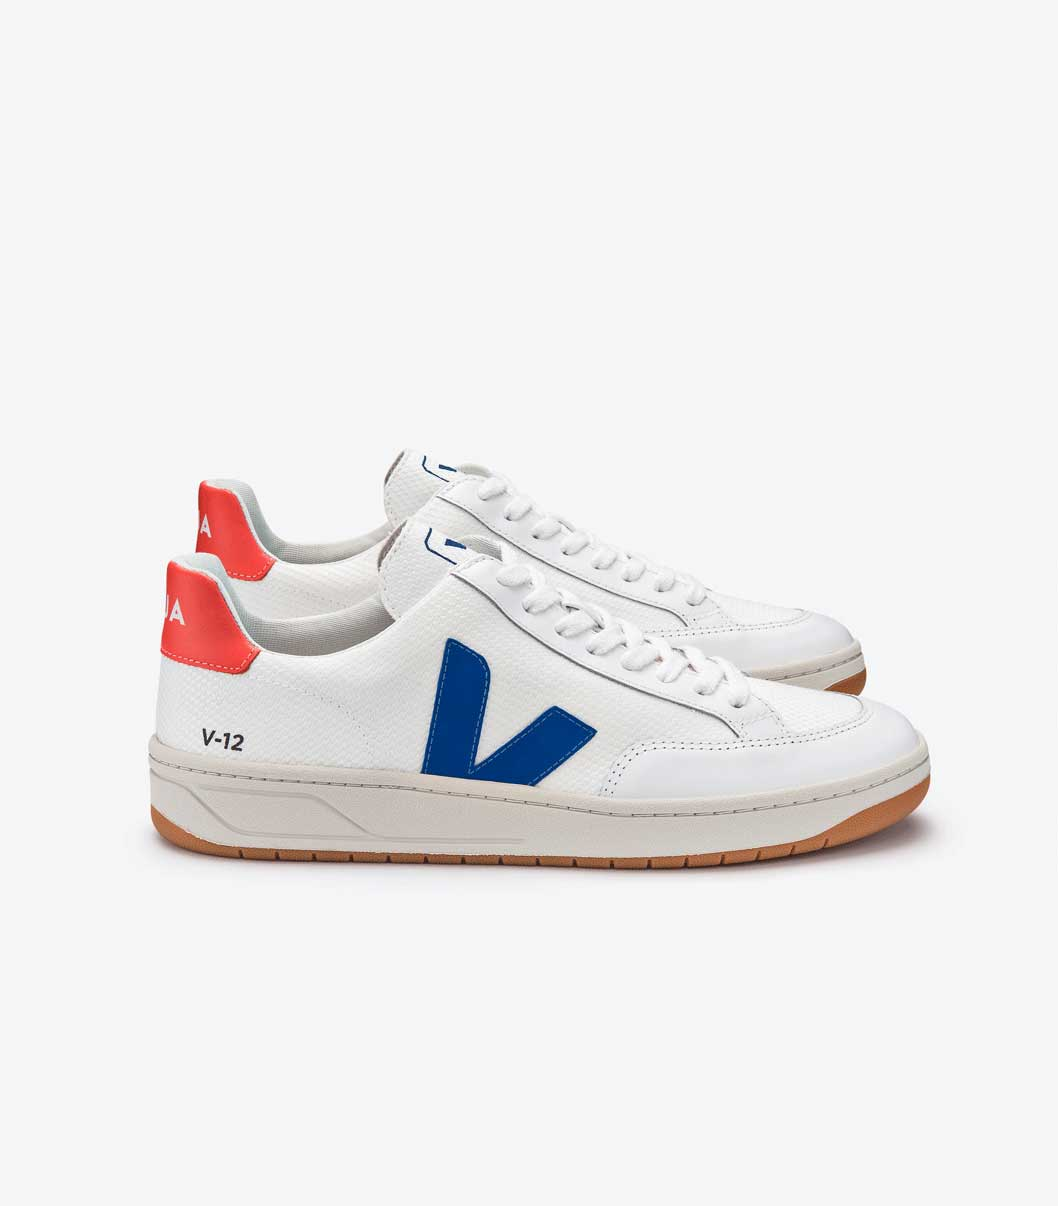 Label Paris Valentine Gauthier sustainable fashion Veja sneakers